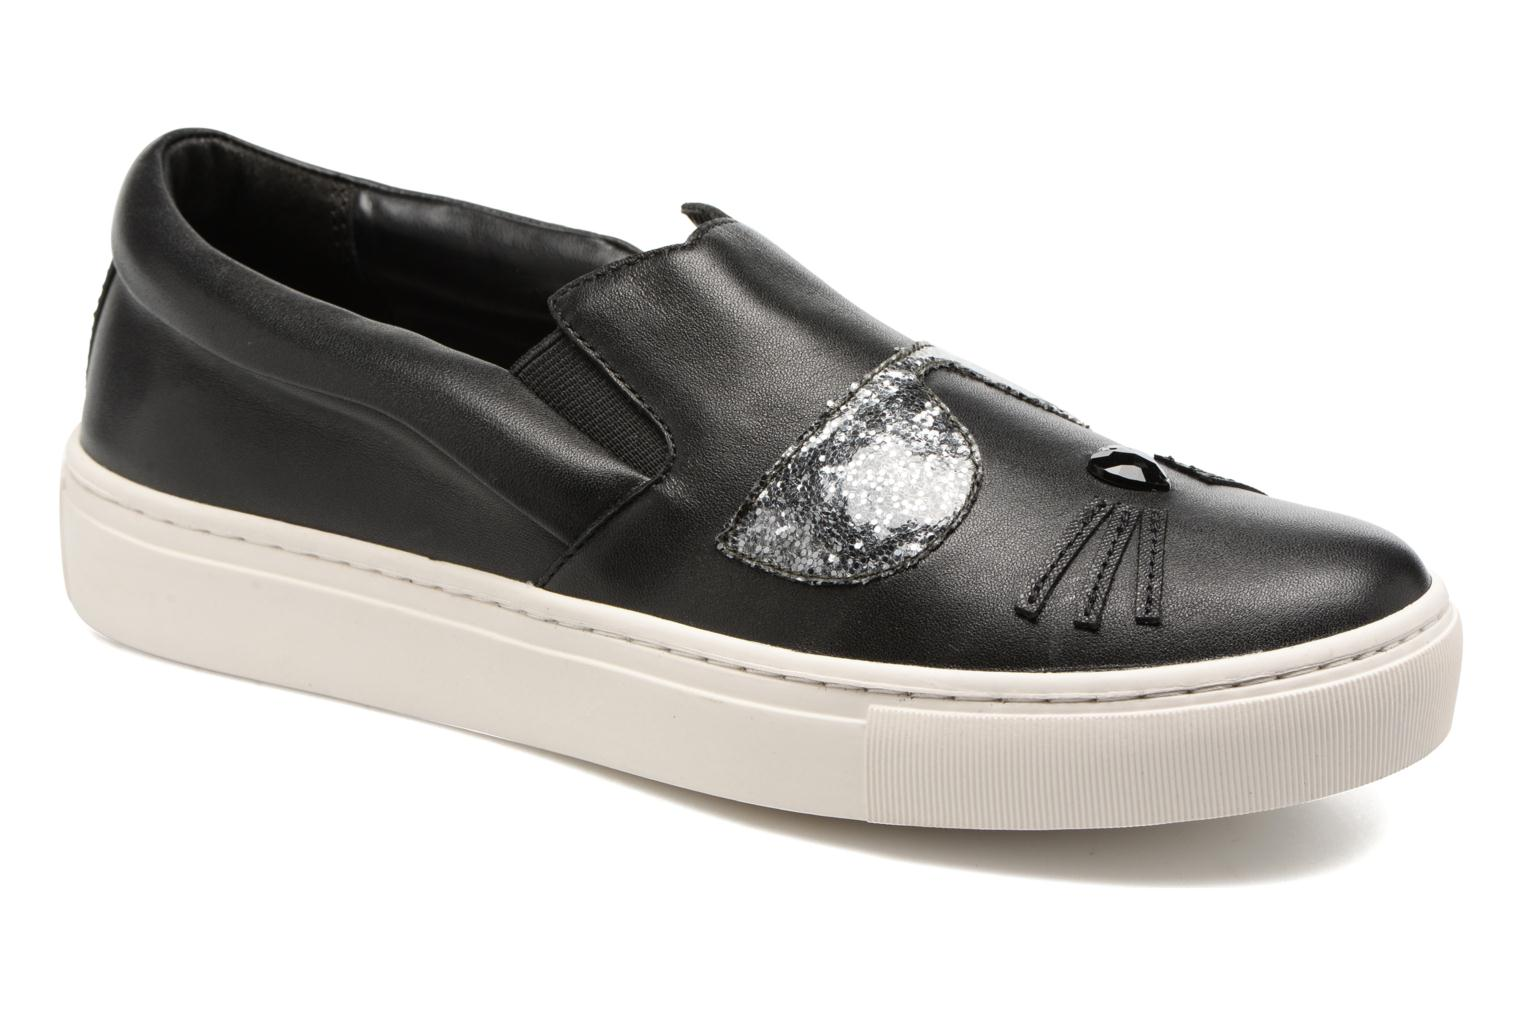 Kupsole Choupette Toe Slip On by Karl LagerfeldRebajas - 50%